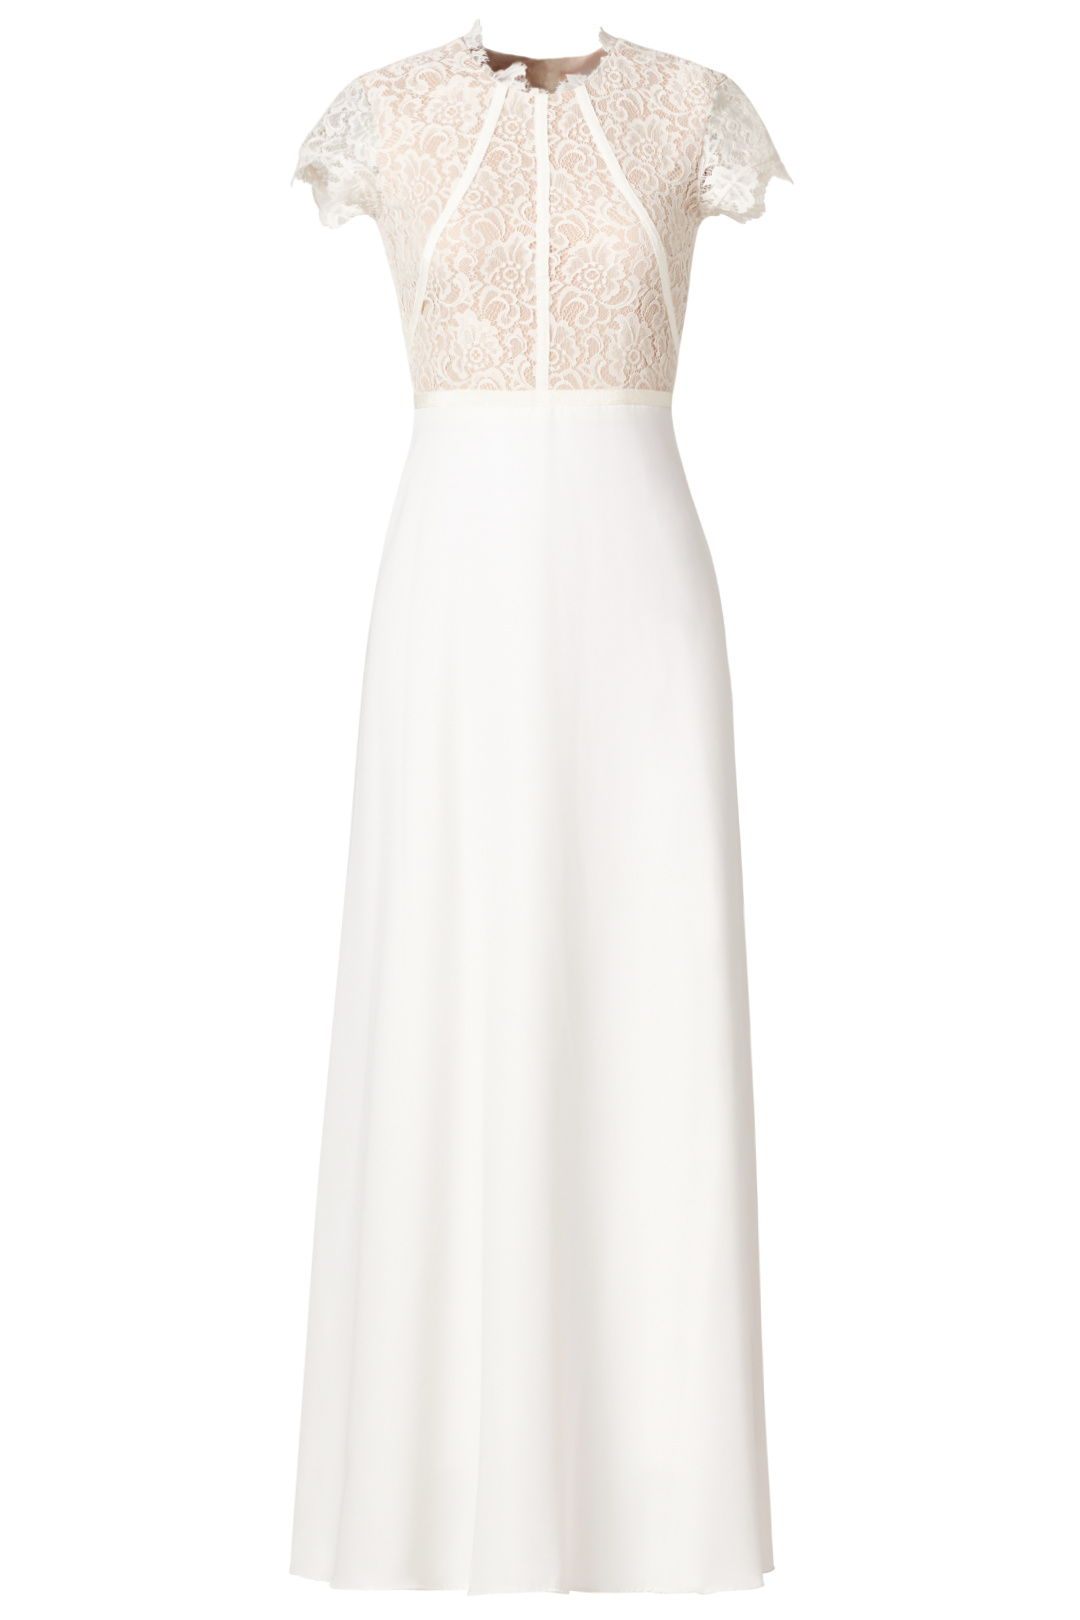 off the rack white lace wedding dress